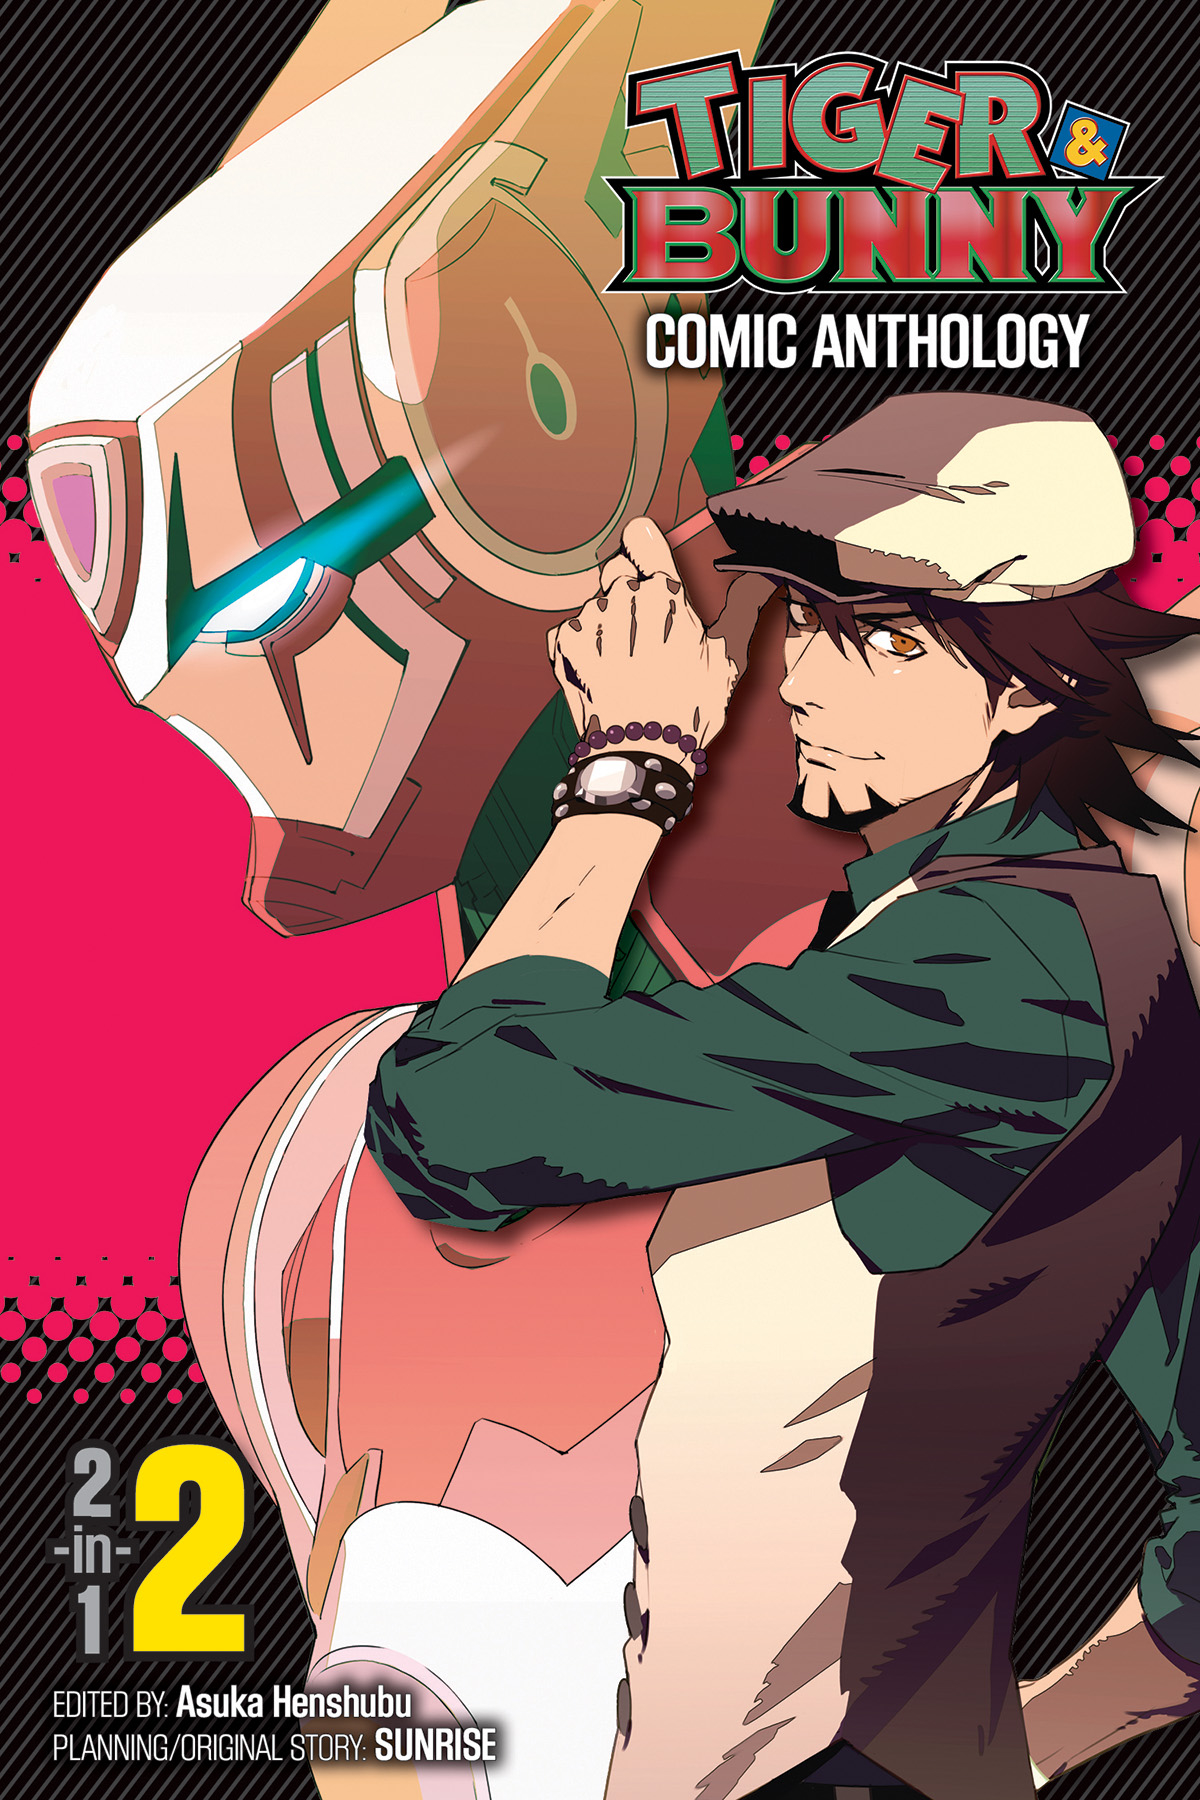 TIGER & BUNNY COMIC ANTHOLOGY GN VOL 02